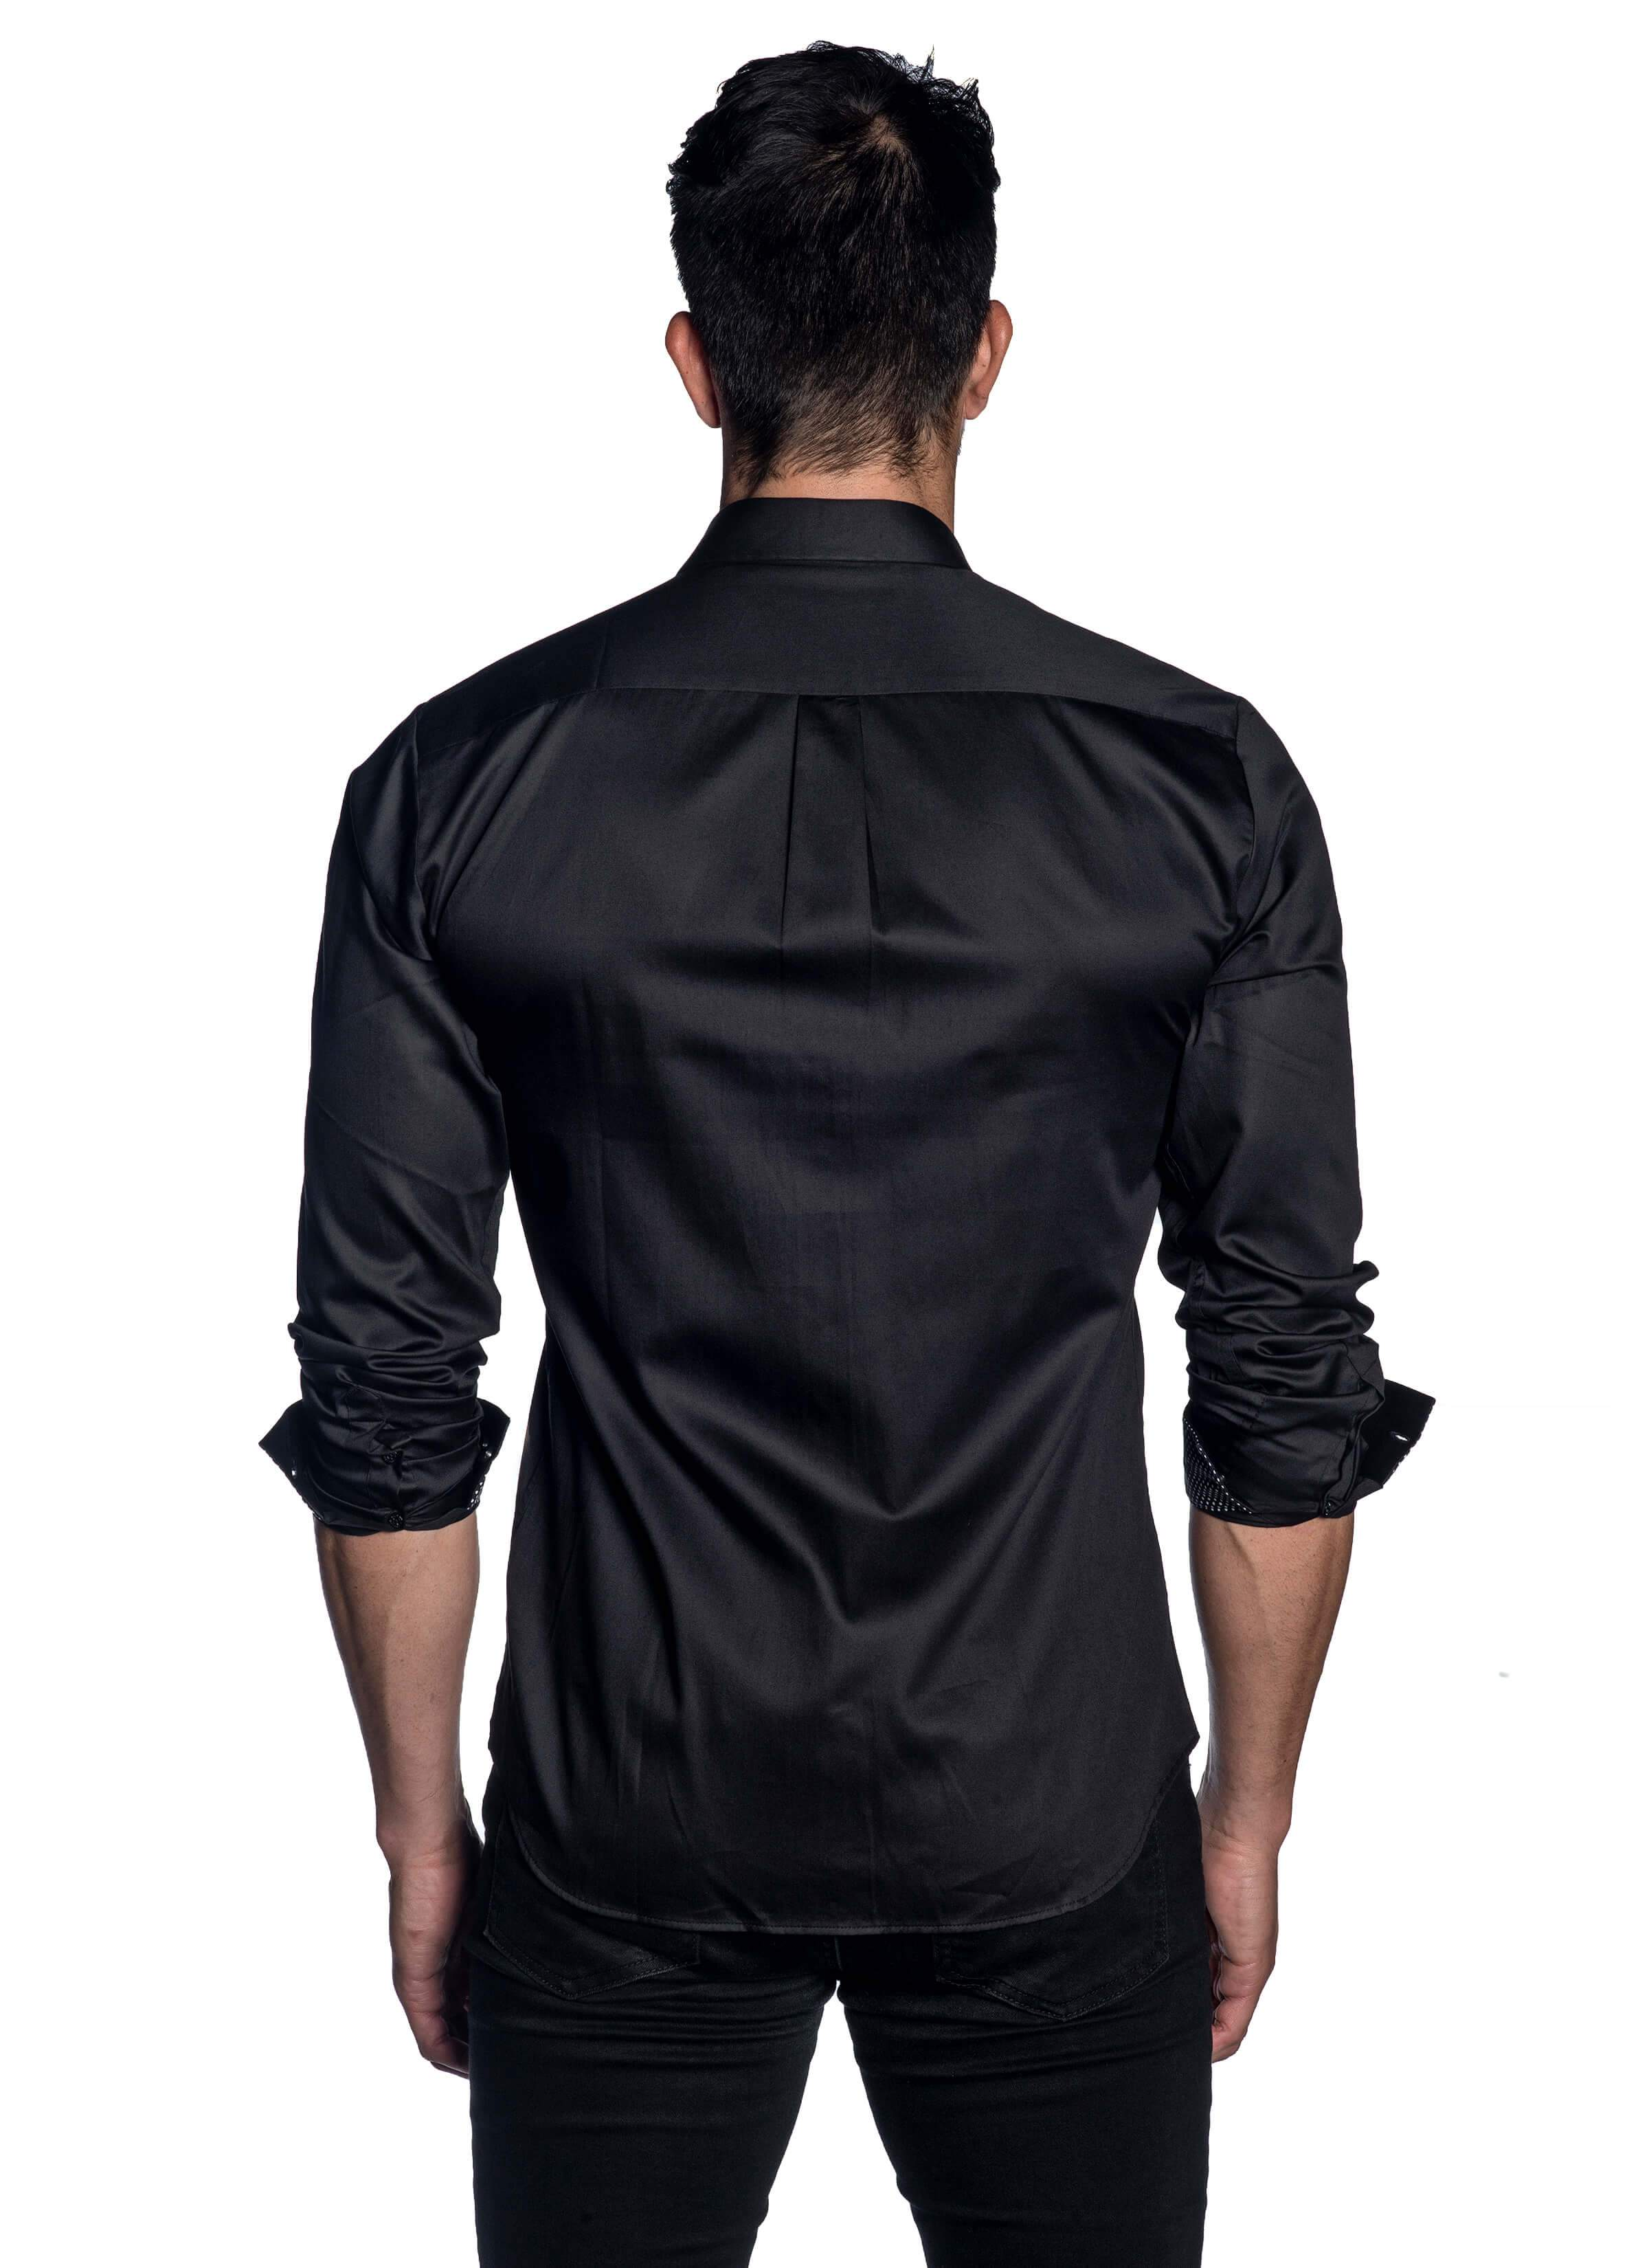 Black Shirt with Polka Dot Trim for Men AH-T-2072